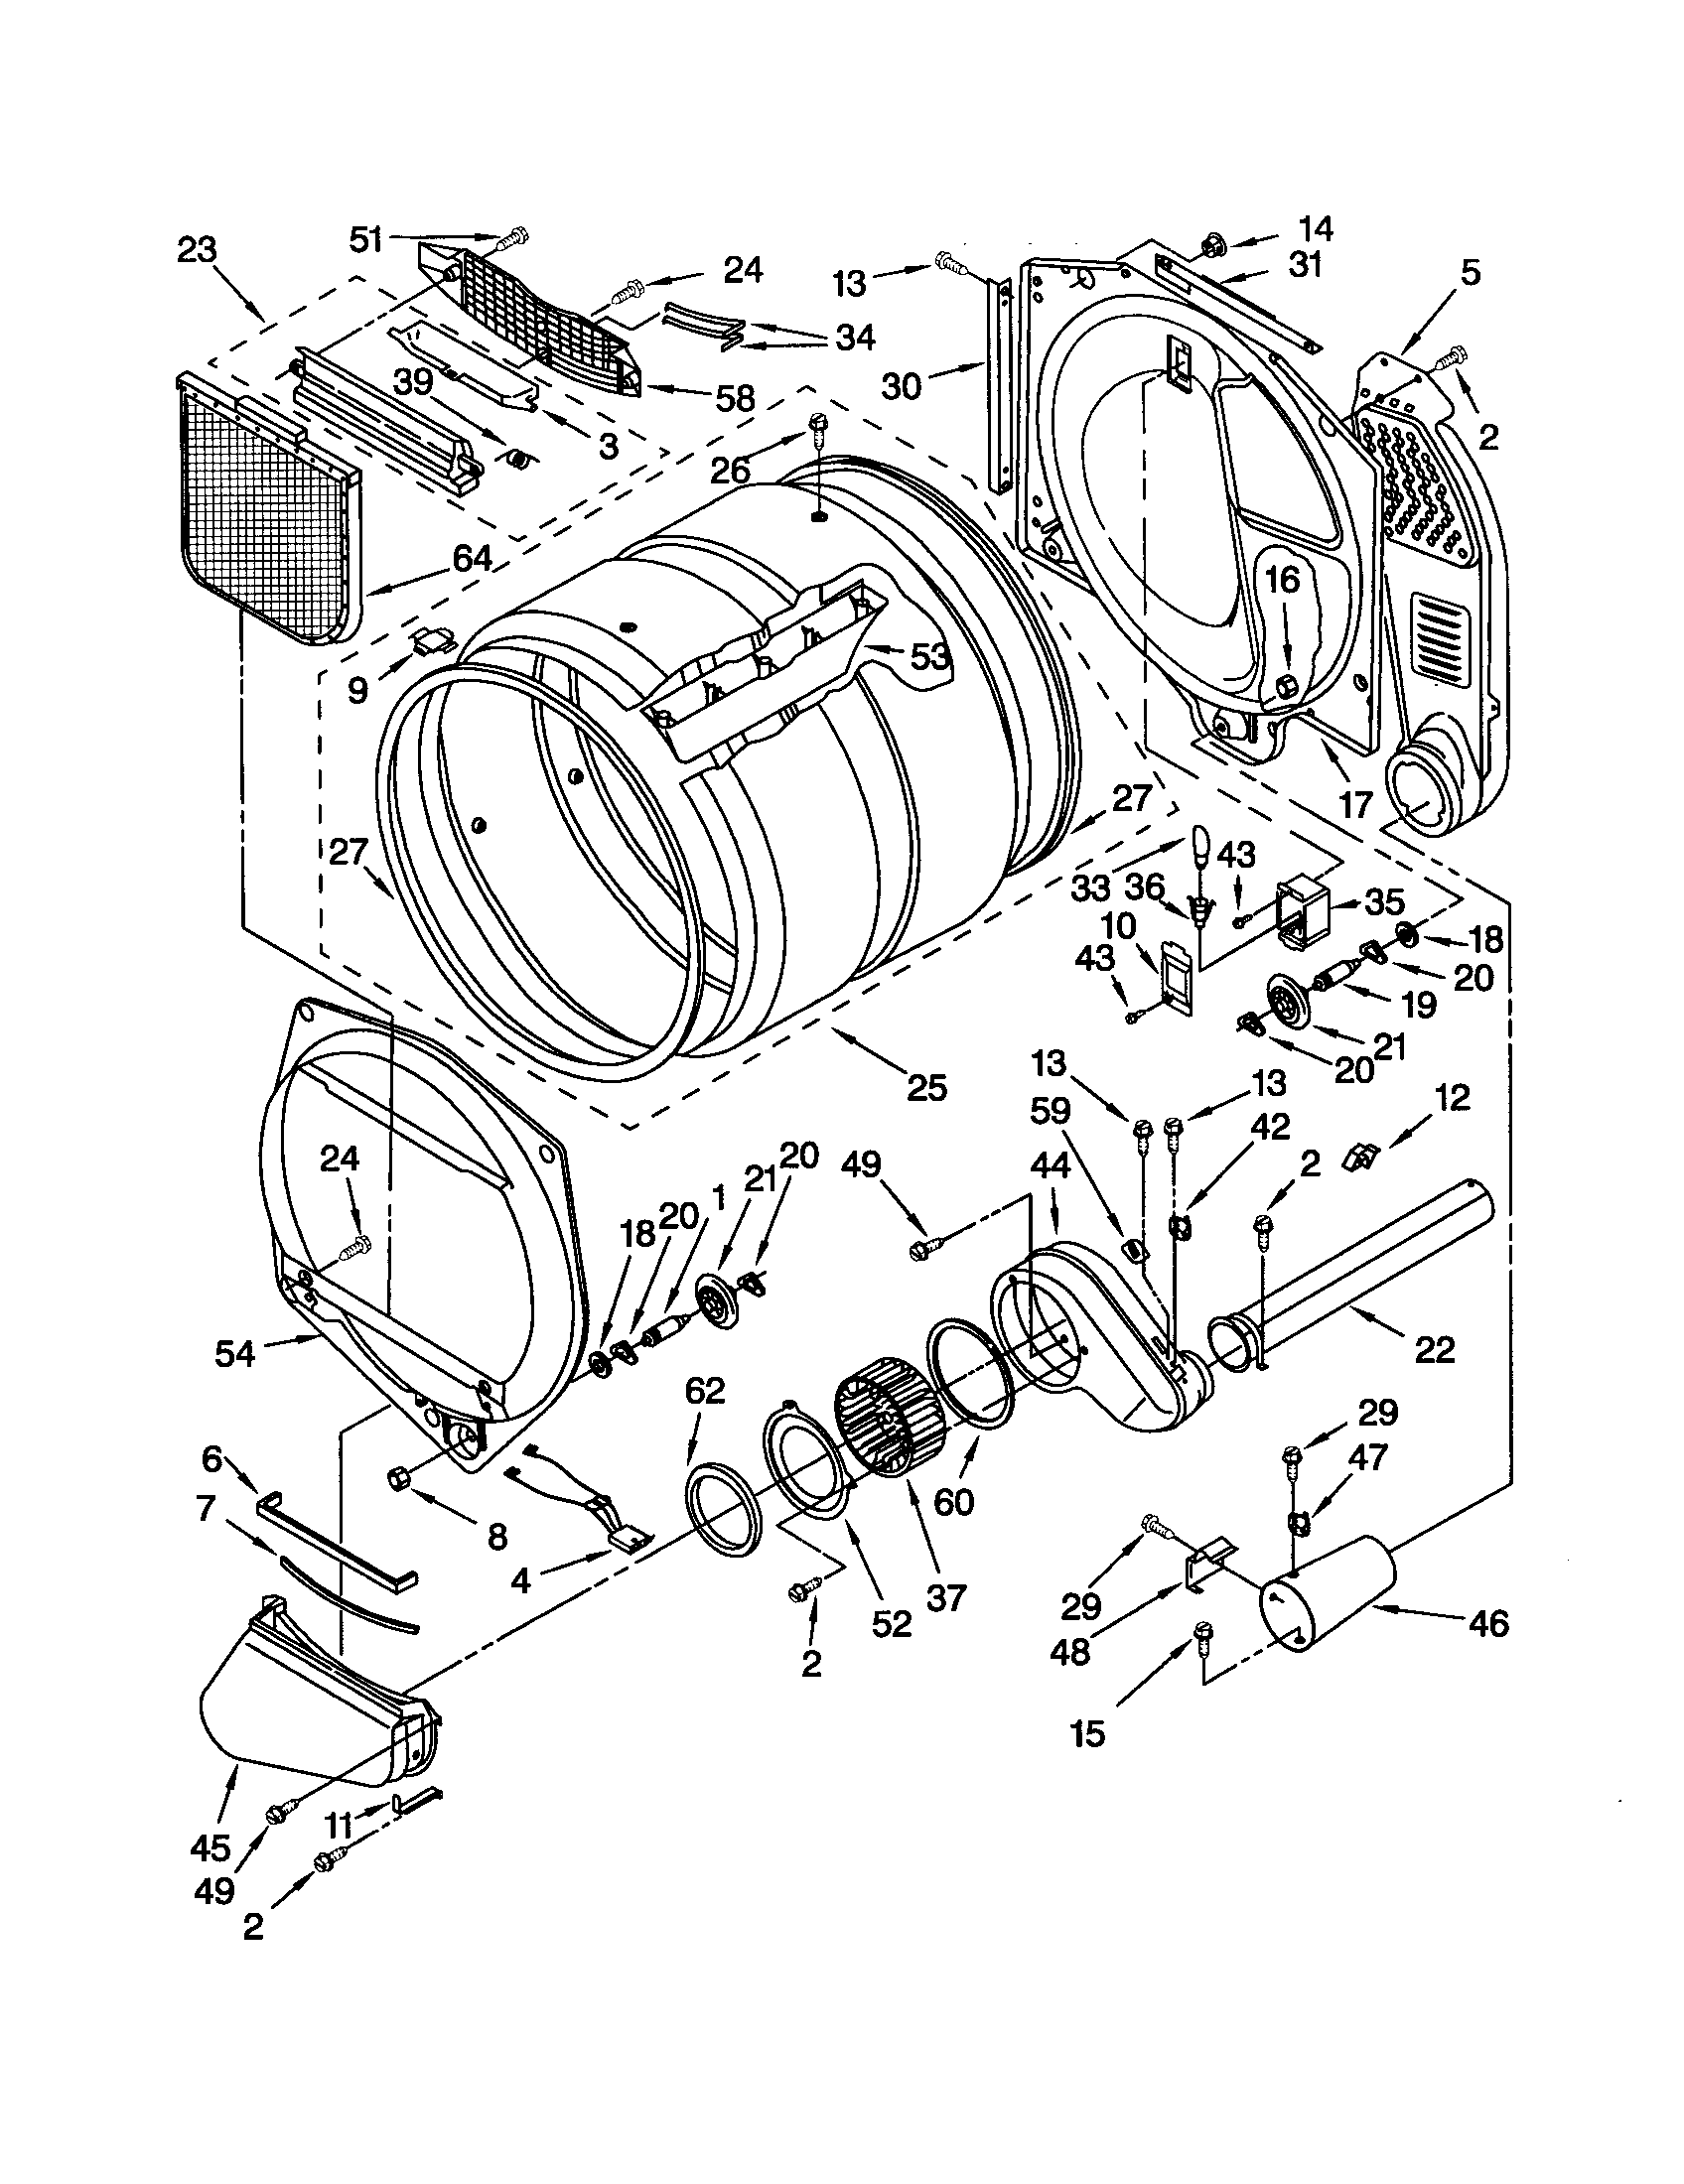 hight resolution of wiring diagram for kenmore dryer